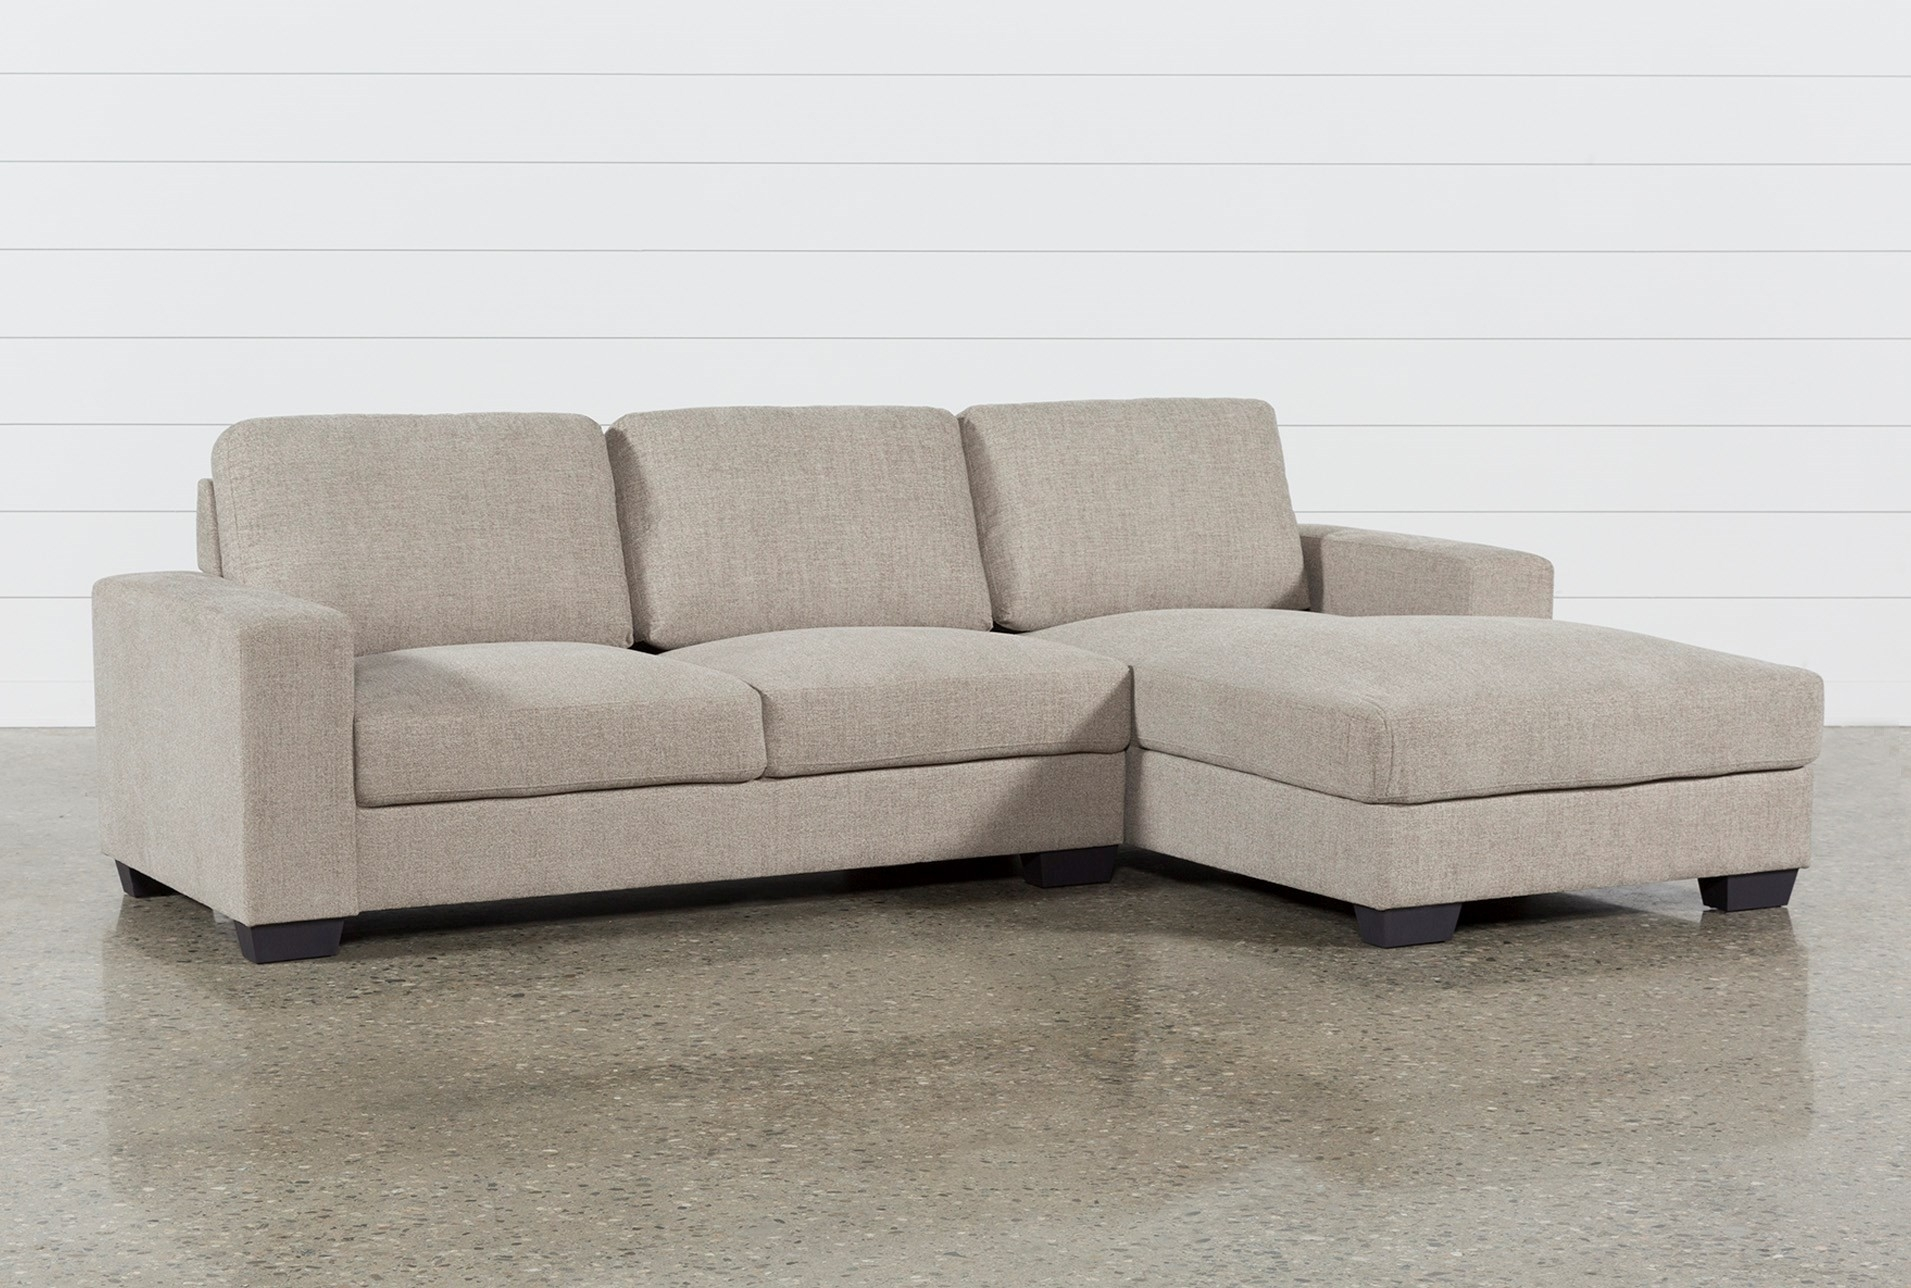 Sectional With 2 Chaises - Implantologiabogota.co regarding Tenny Cognac 2 Piece Right Facing Chaise Sectionals With 2 Headrest (Image 21 of 30)